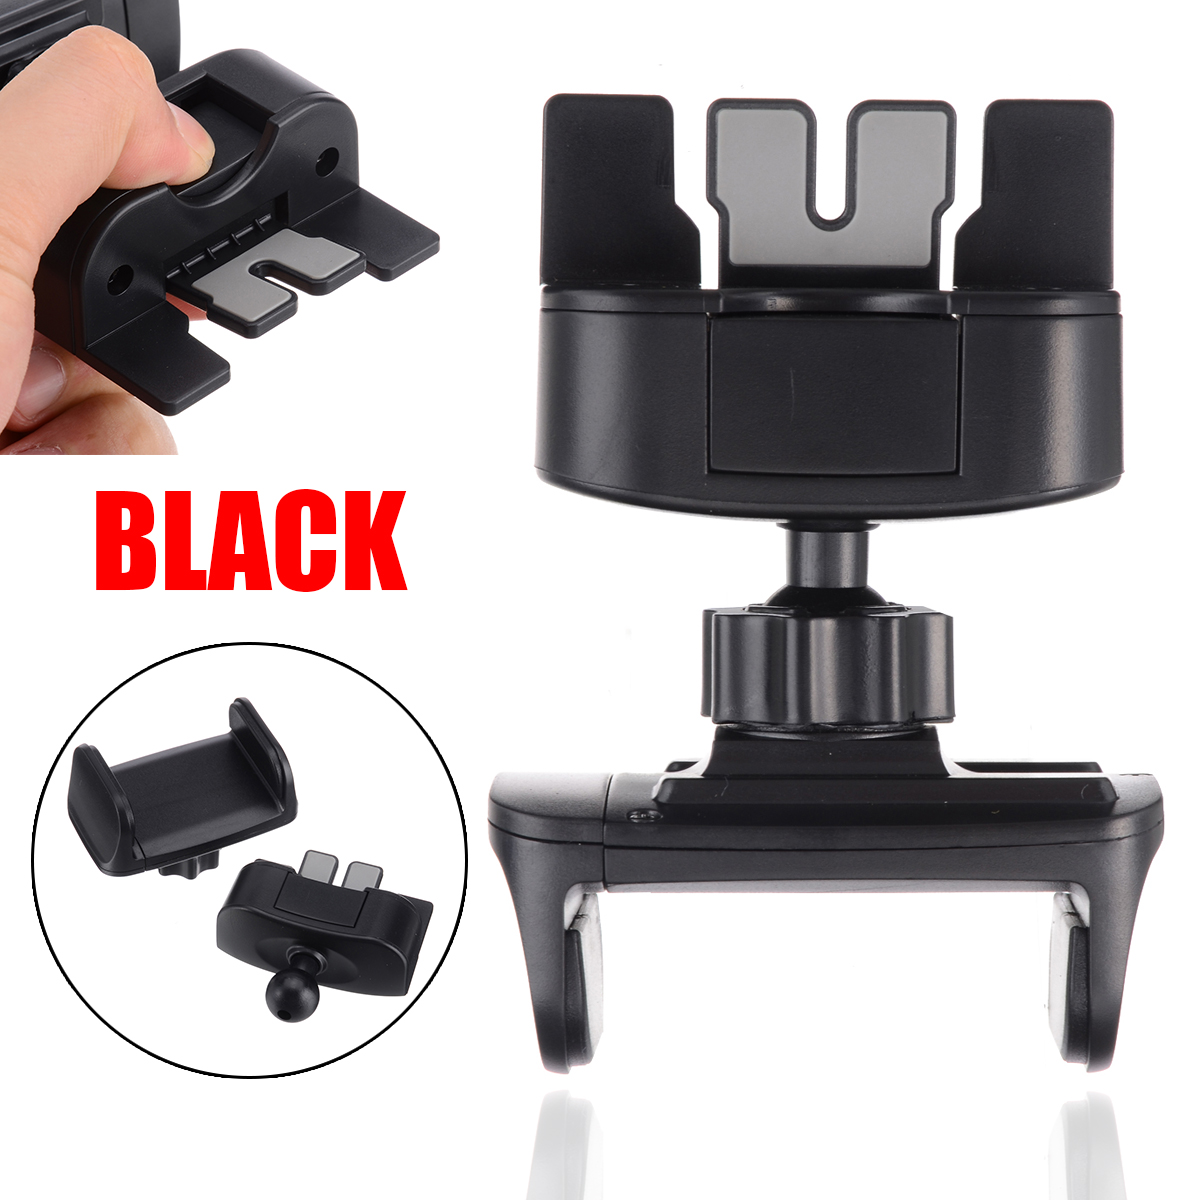 Newest Universal Portable Car CD Slot Phone Mount Holder Stand For Samsung Galaxy S10e S10 S9 S8 Plus For Mobile Cell Phone